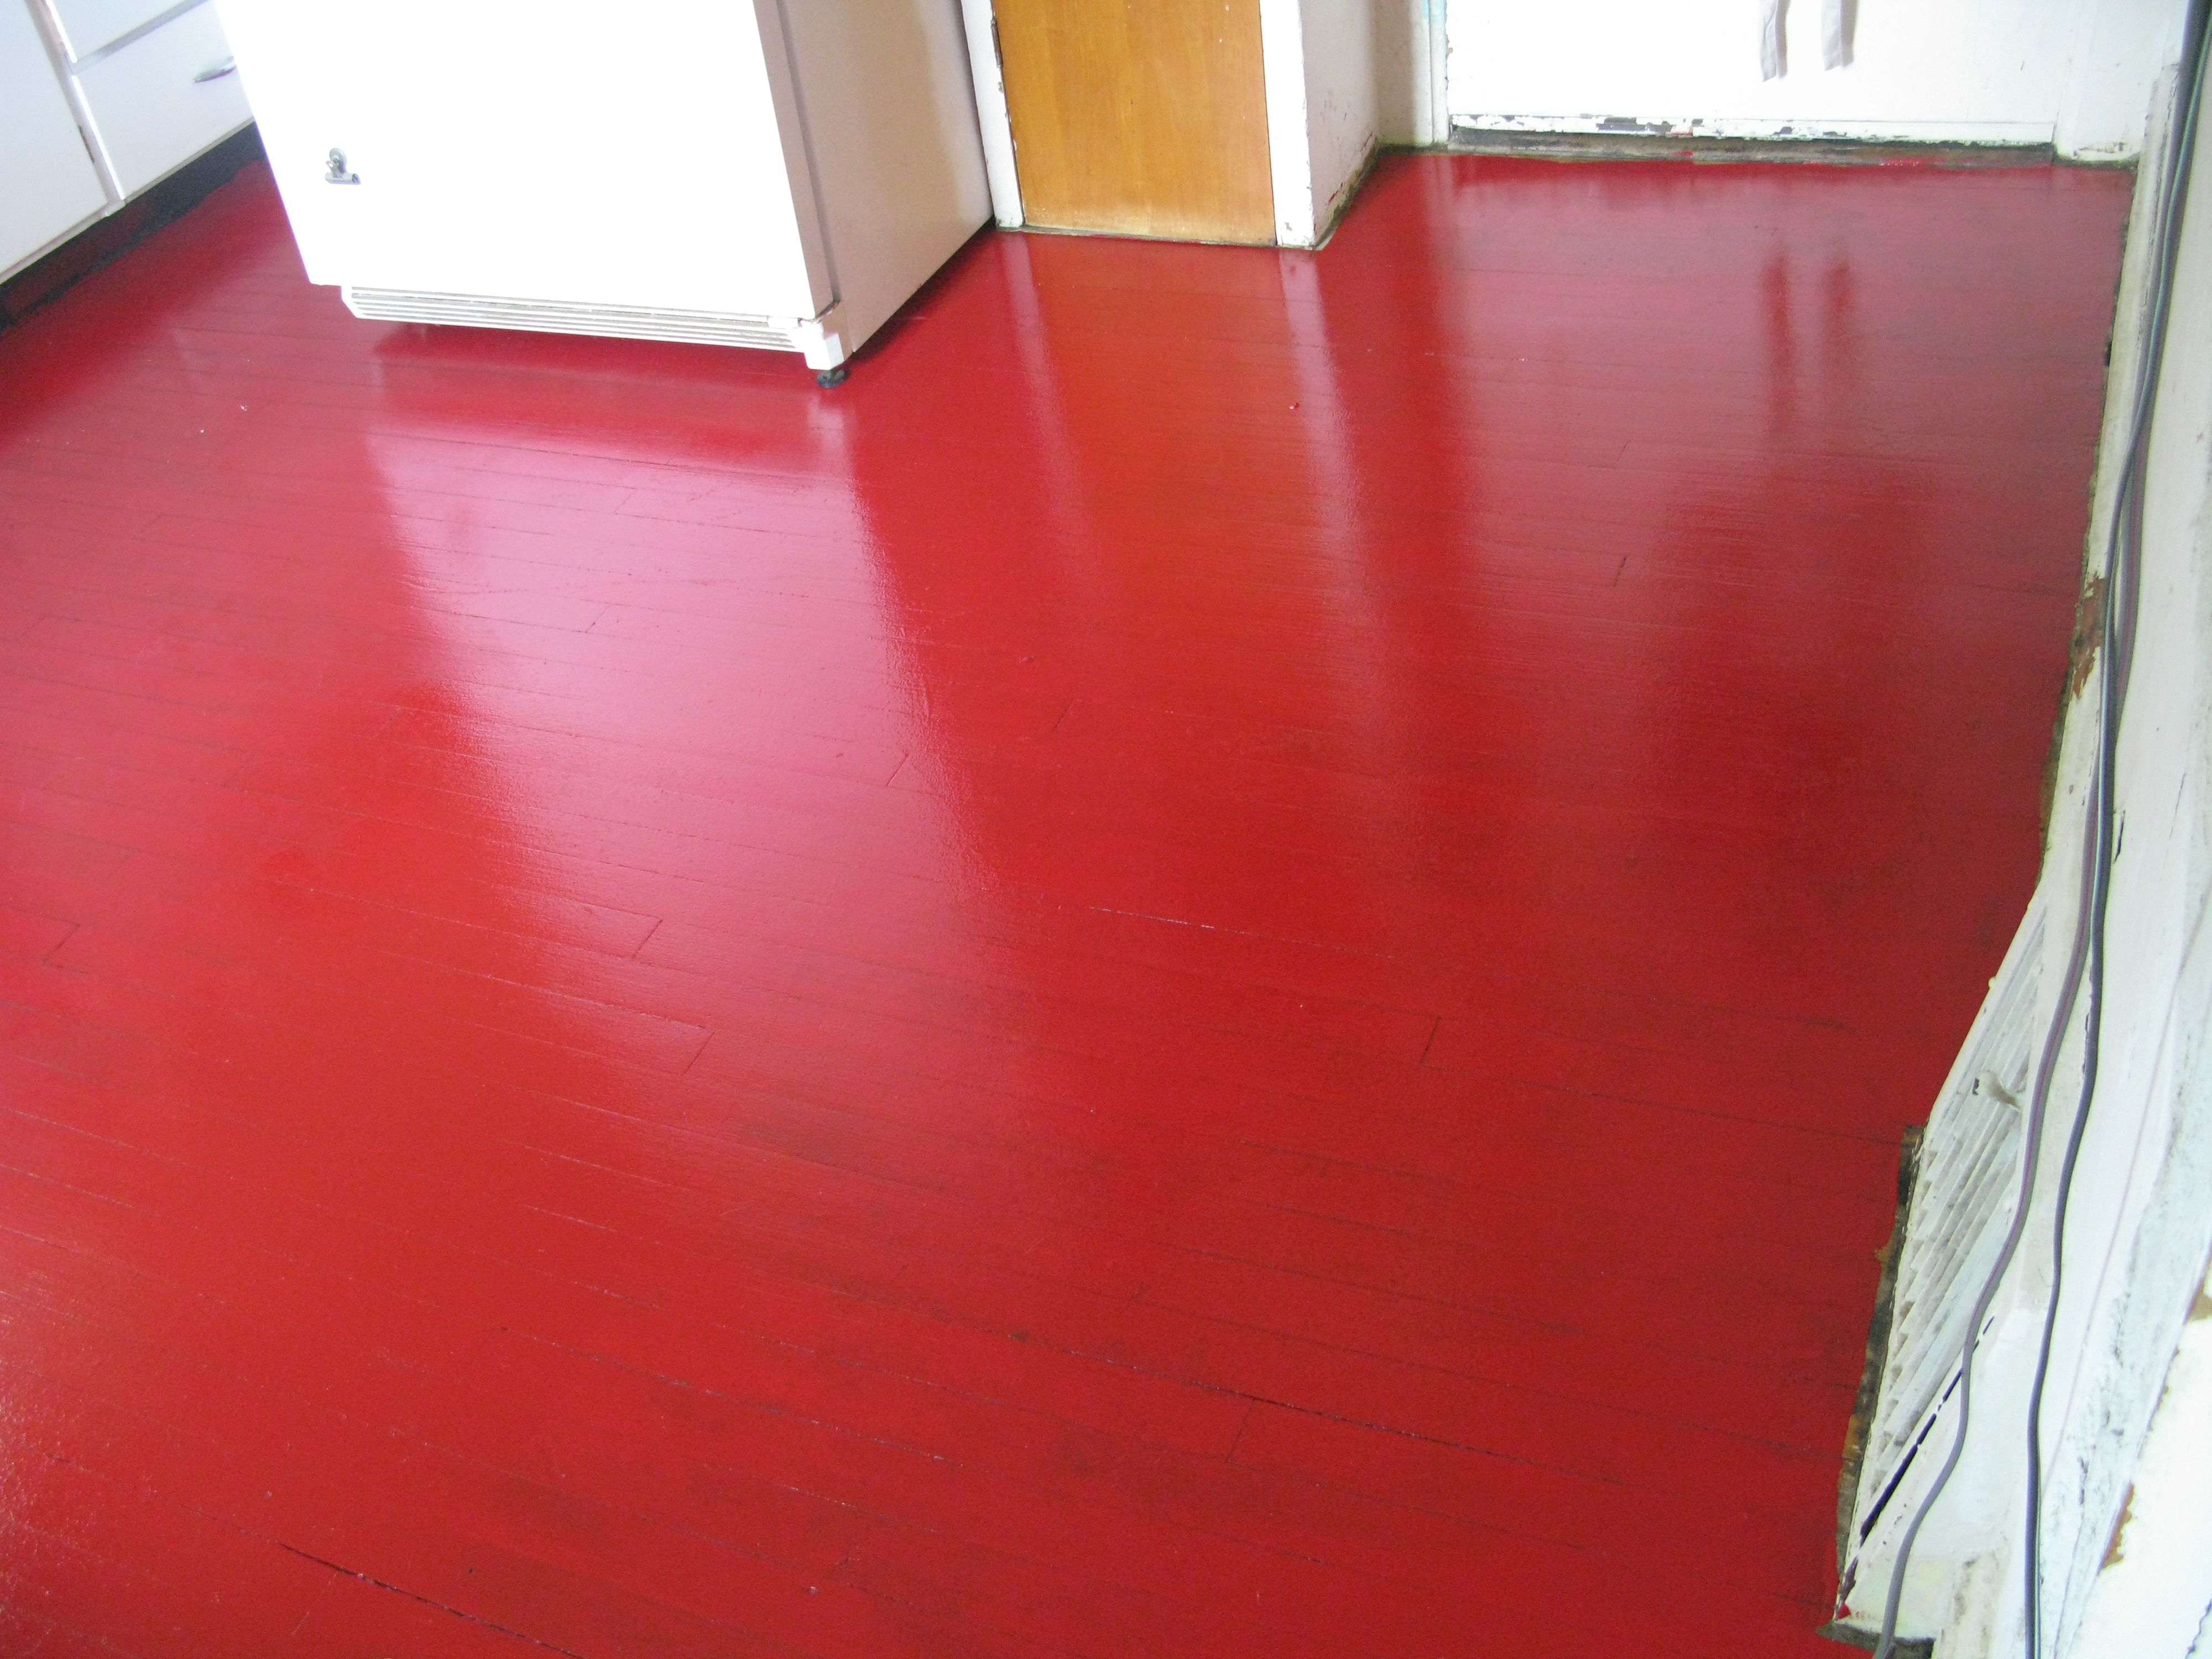 Glidden porch & floor (oil based) paint tinted